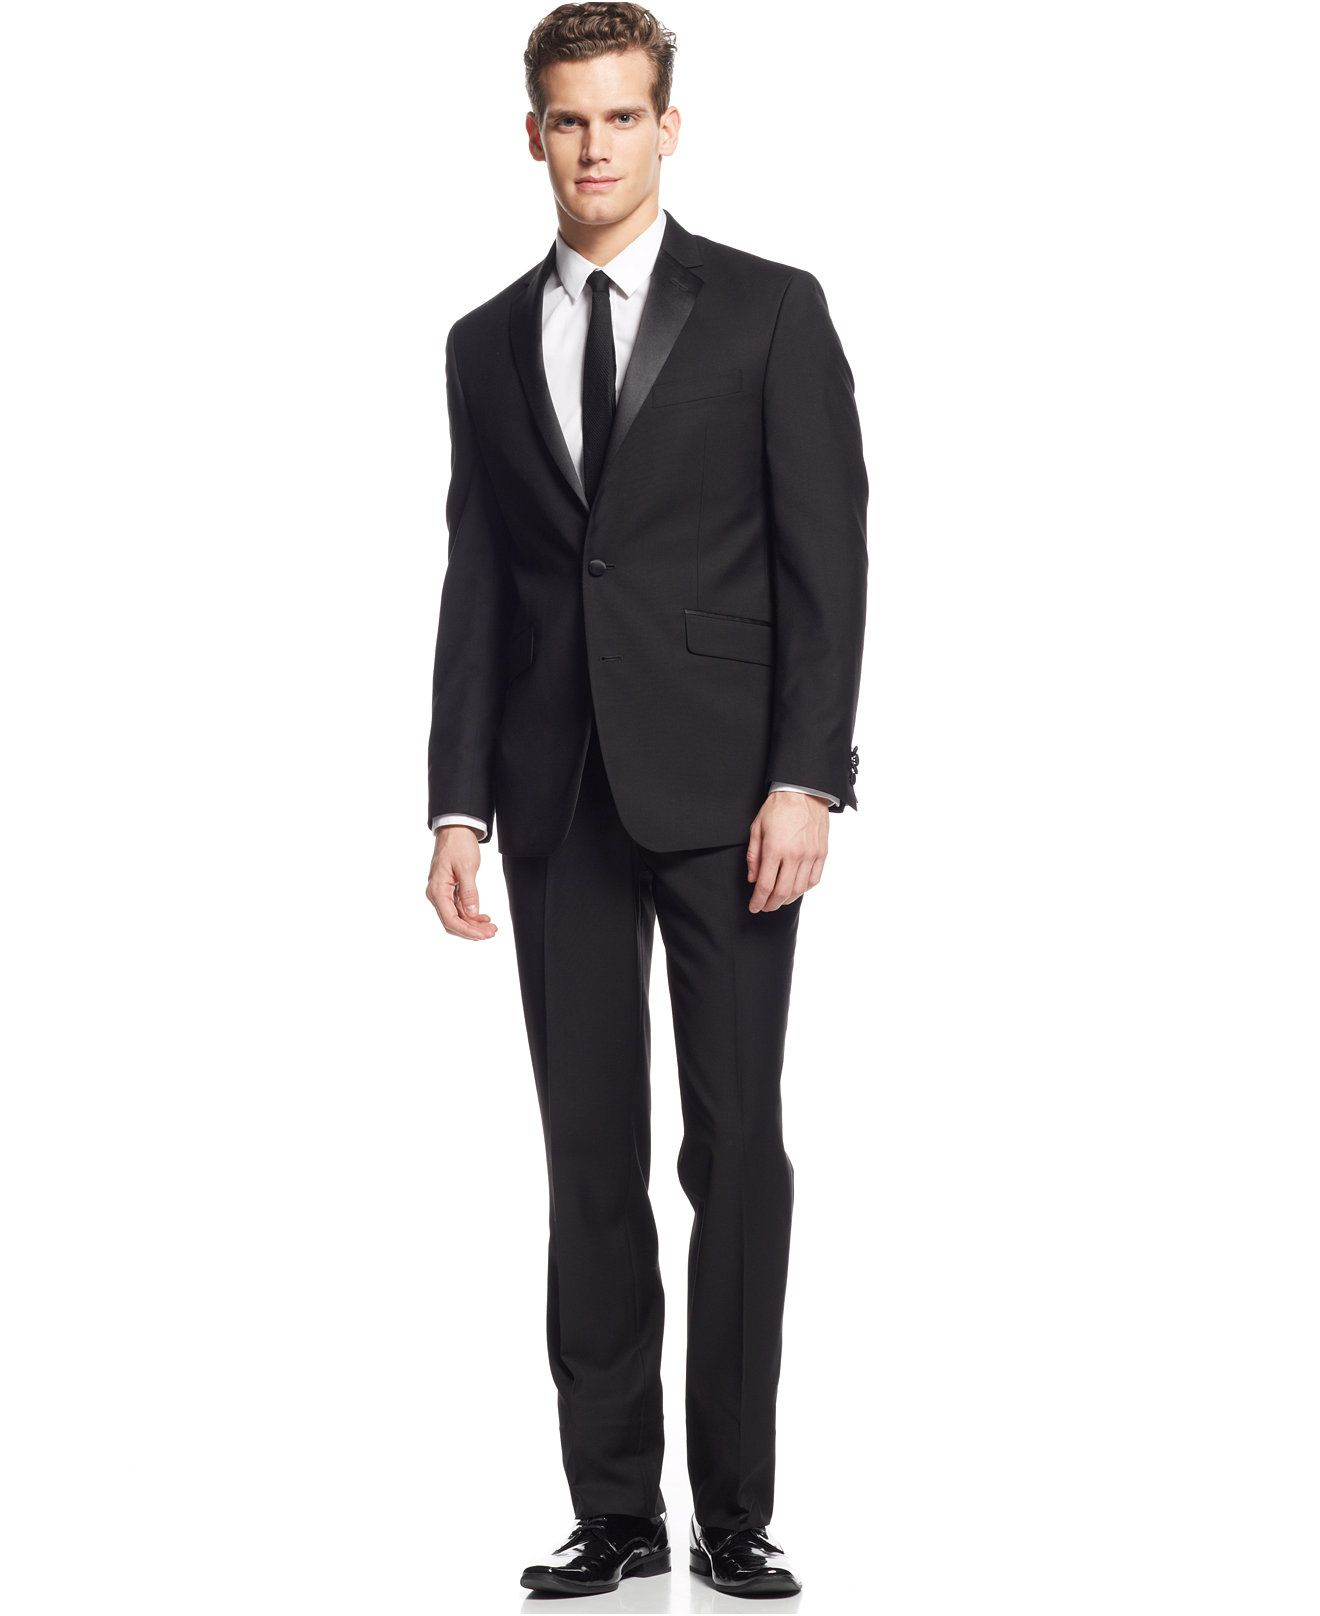 372abca79b Kenneth Cole Reaction Slim-Fit Black Tuxedo - Suits   Suit Separates - Men  - Macy s